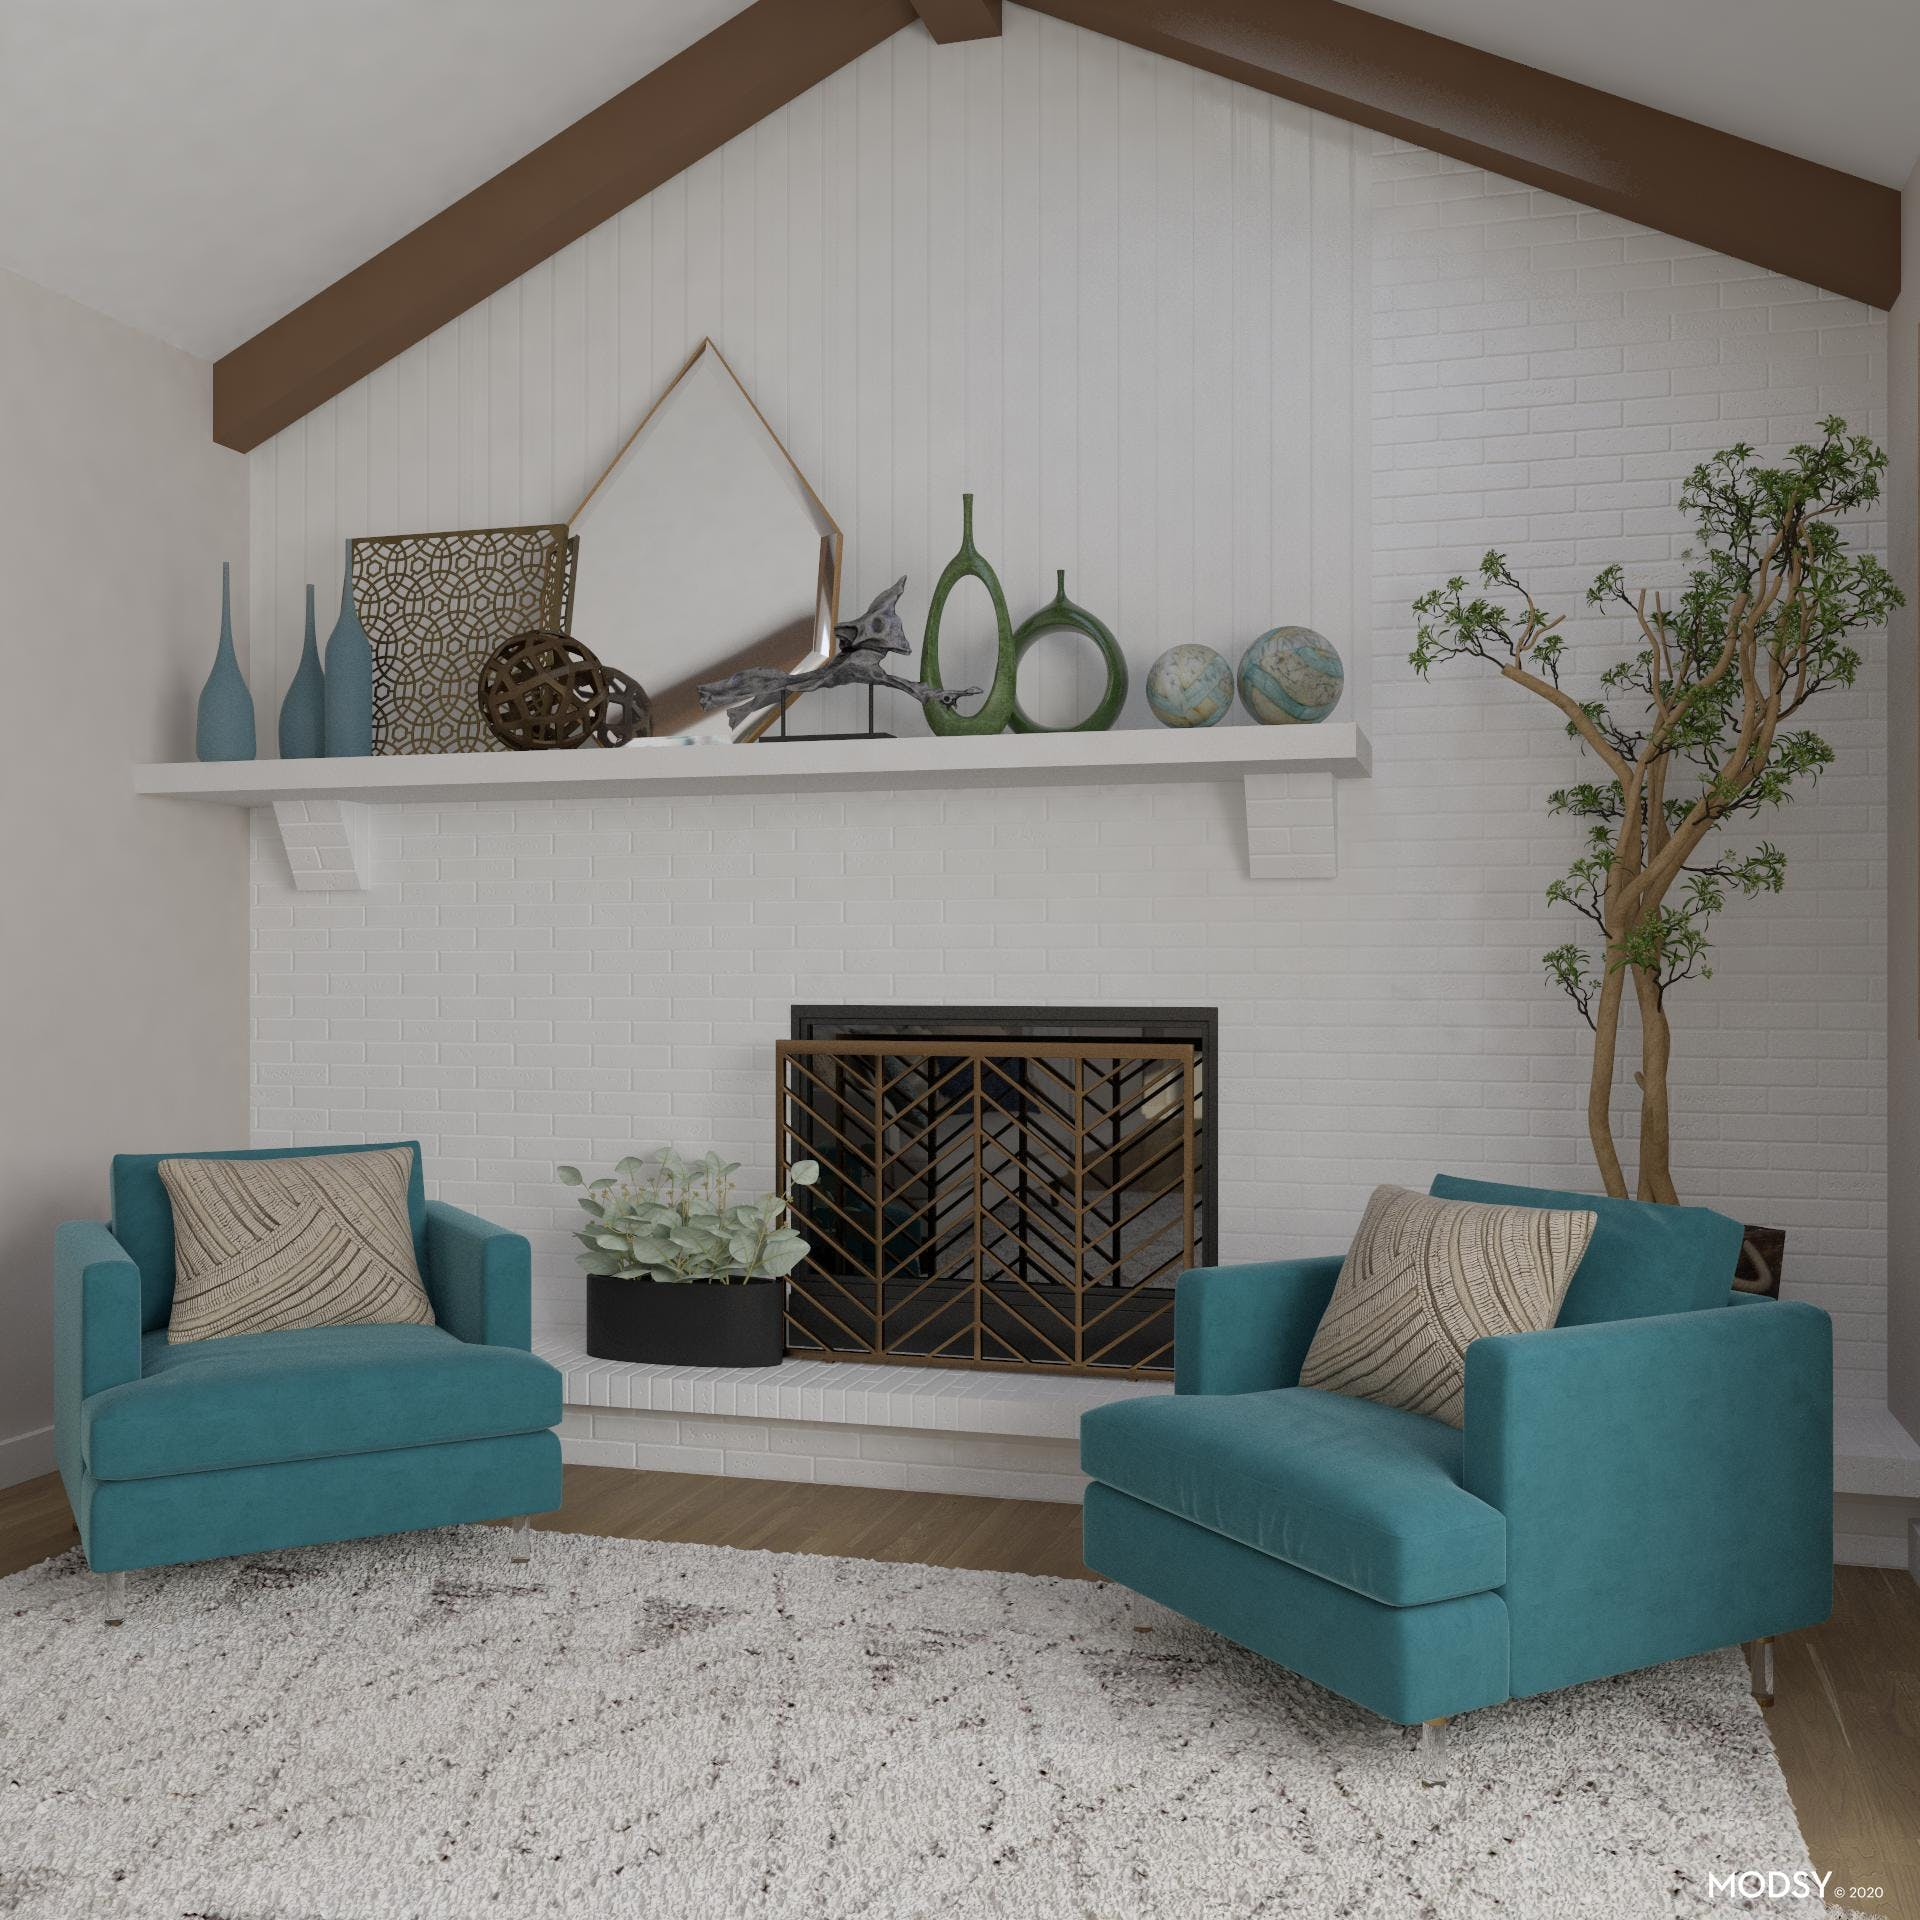 Bring In Nature: Eclectic Living